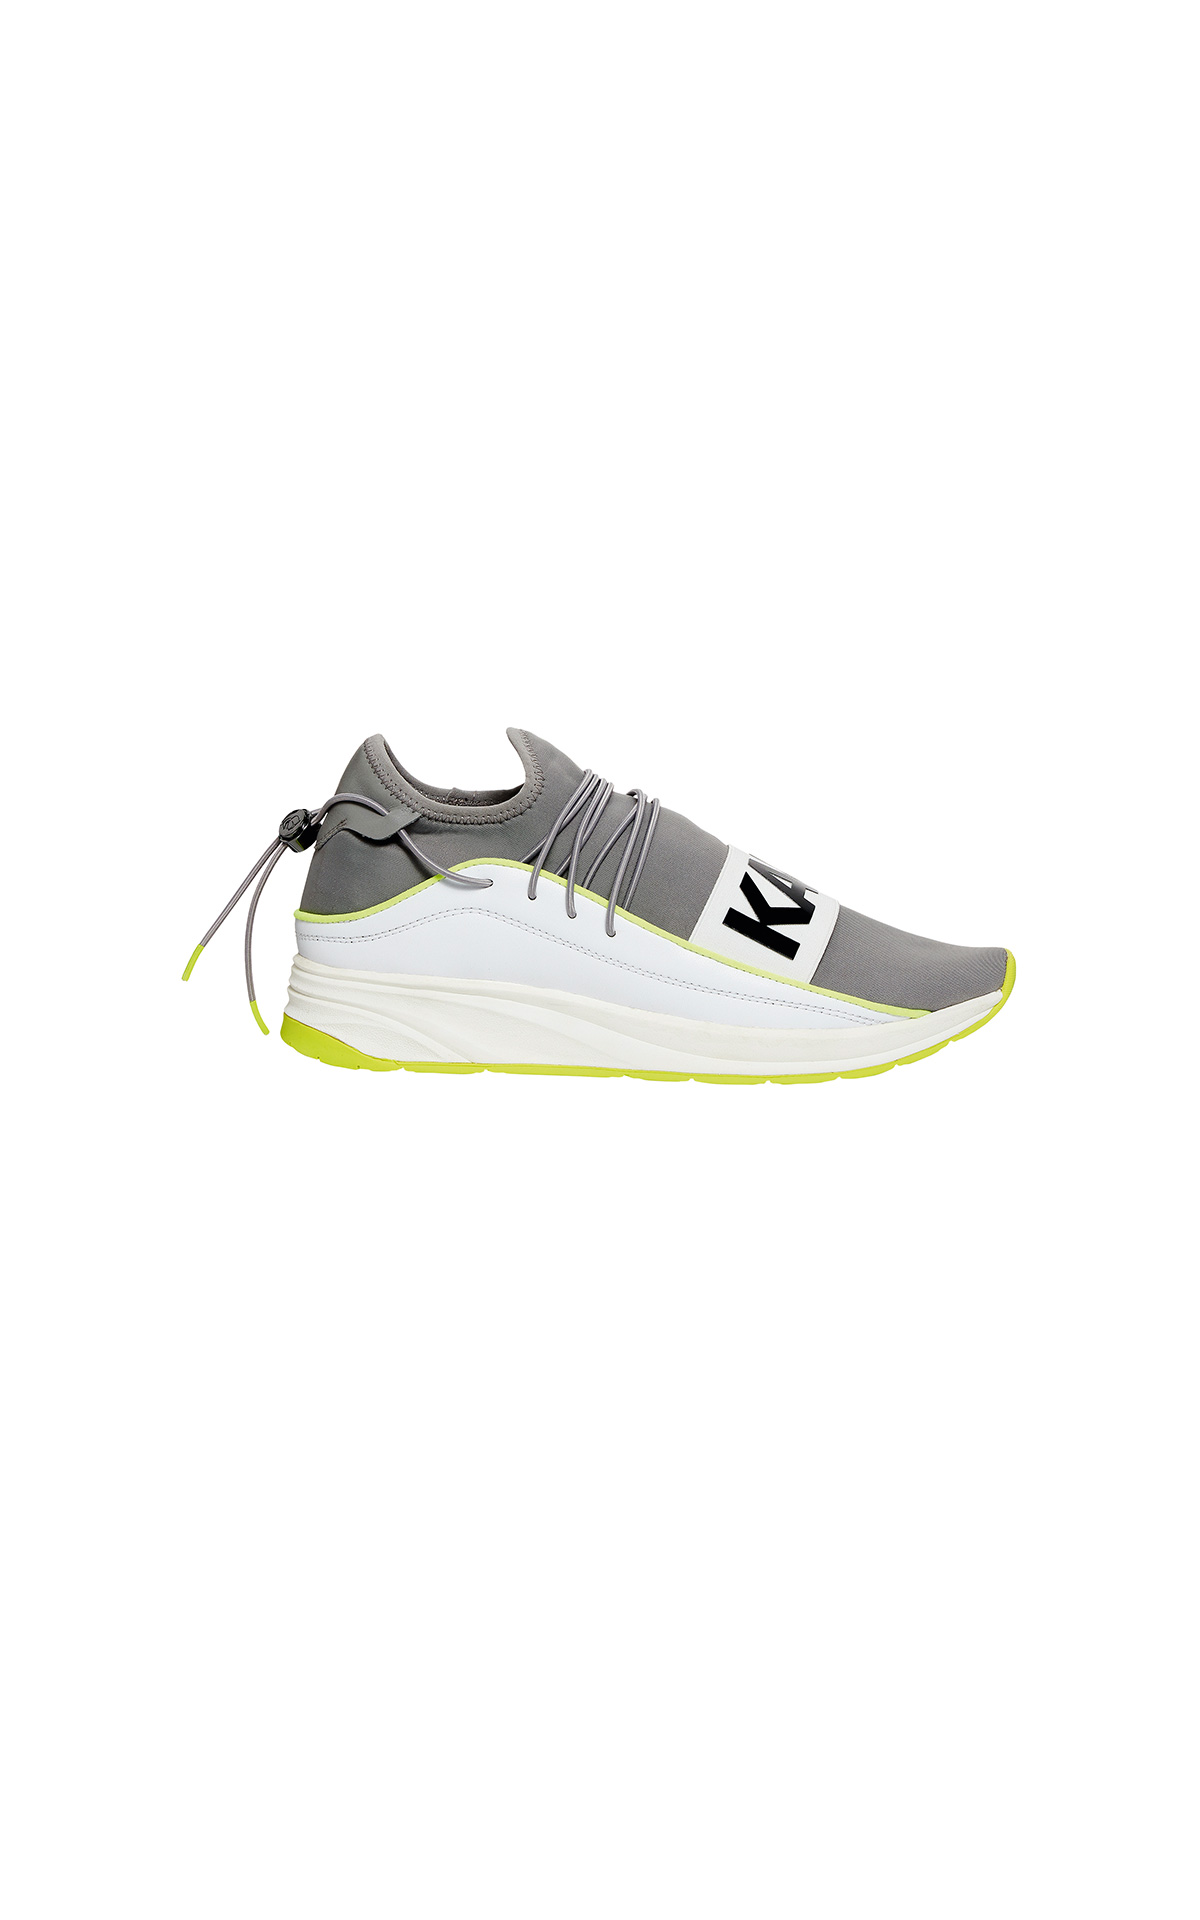 KARL LAGERFELD men's Vektor Karl Band Neon Trainers at The Bicester Village Shopping Collection